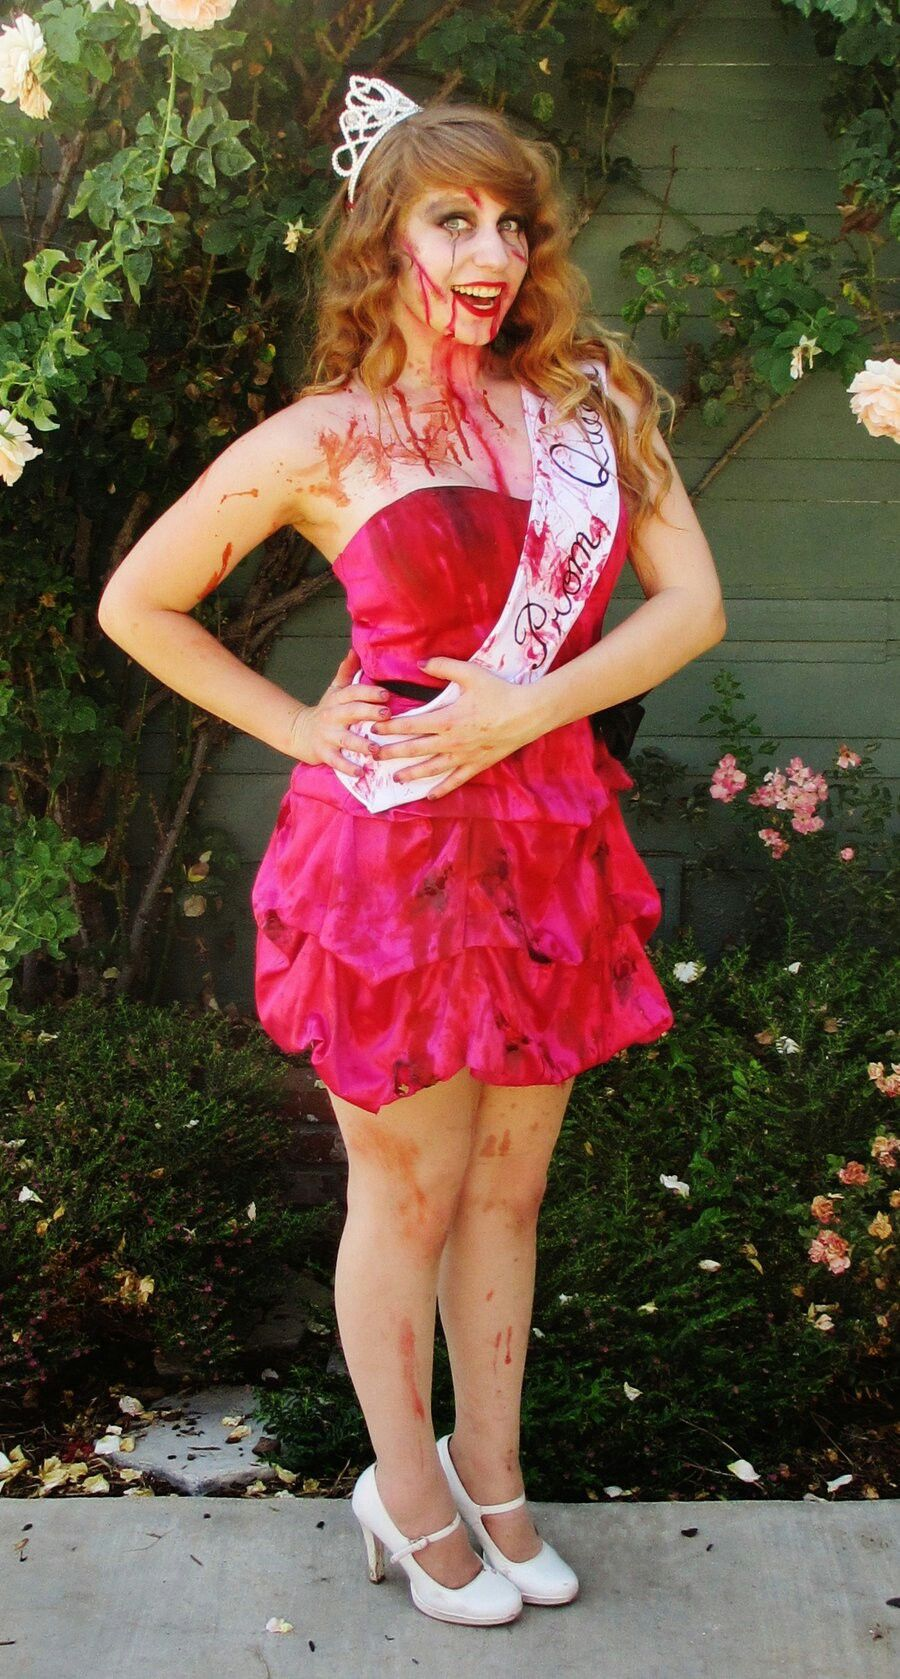 767f1af21ac Dead prom queen | Oh The Horror! | Halloween 2016, Halloween ...